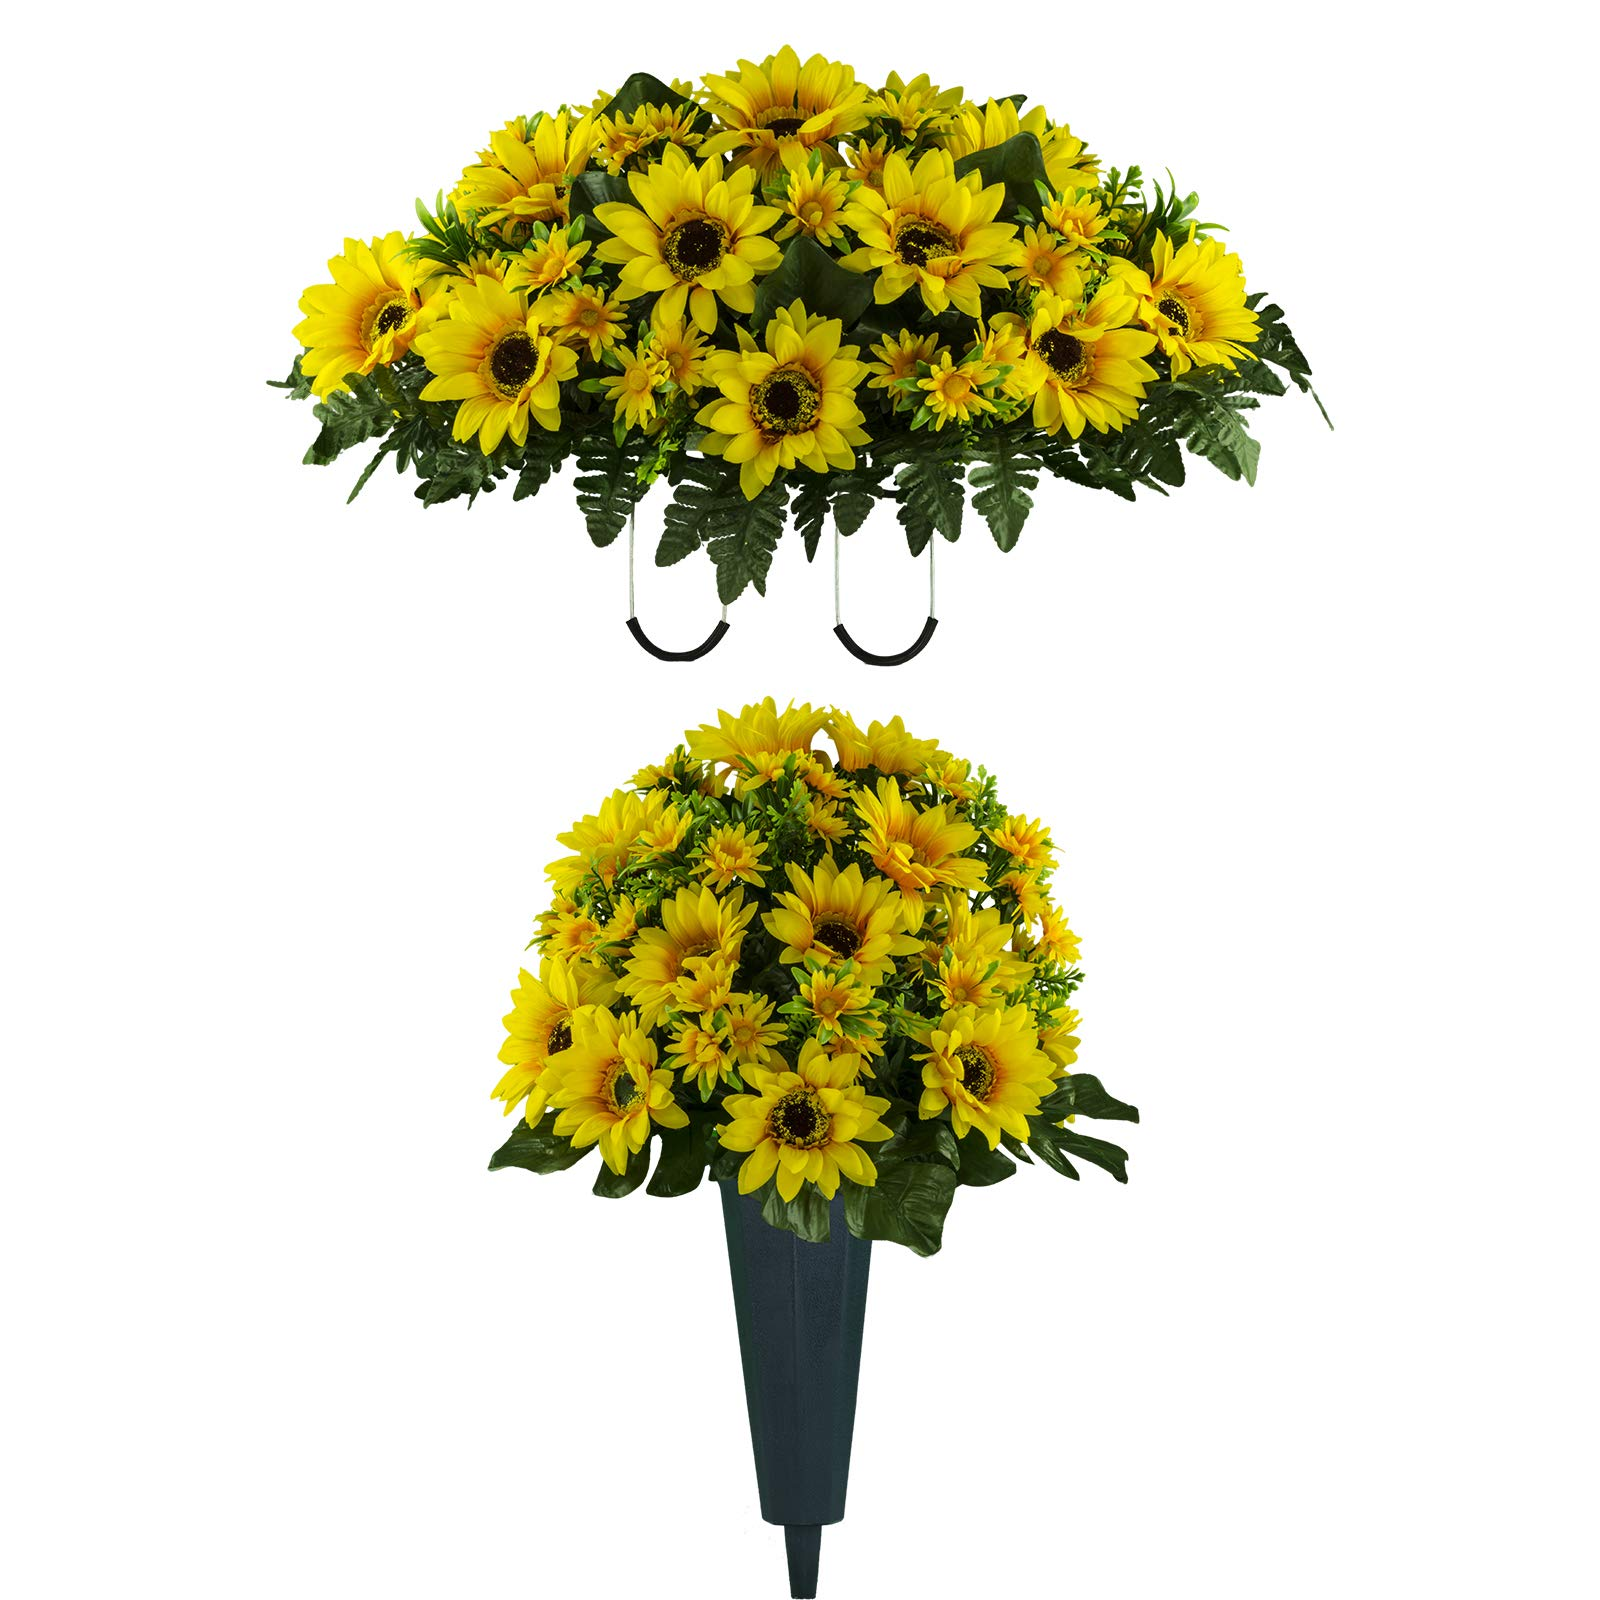 Sympathy Silks Artificial Cemetery Flowers – Realistic Vibrant Sunflowers Outdoor Grave Decorations - Non-Bleed Colors, and Easy Fit - One Yellow Sunflower Bouquet and One Yellow Sunflower Saddle